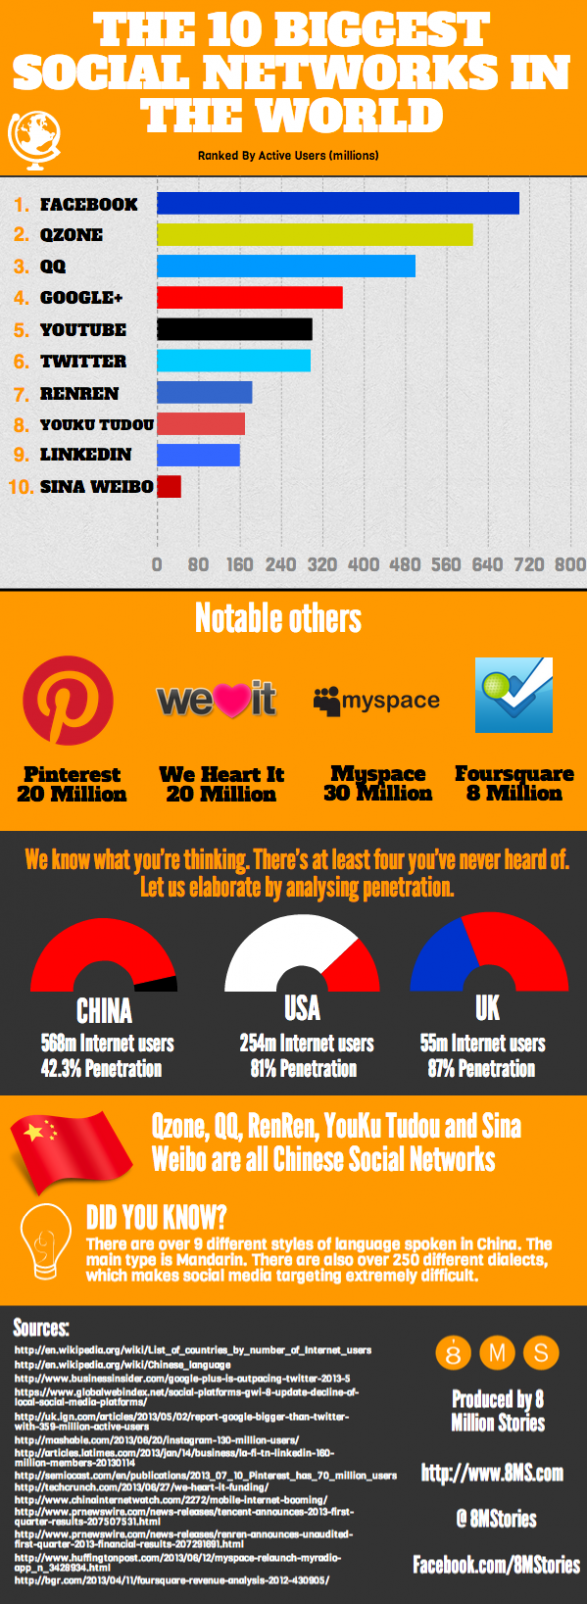 The 10 Biggest Social Networks In The World